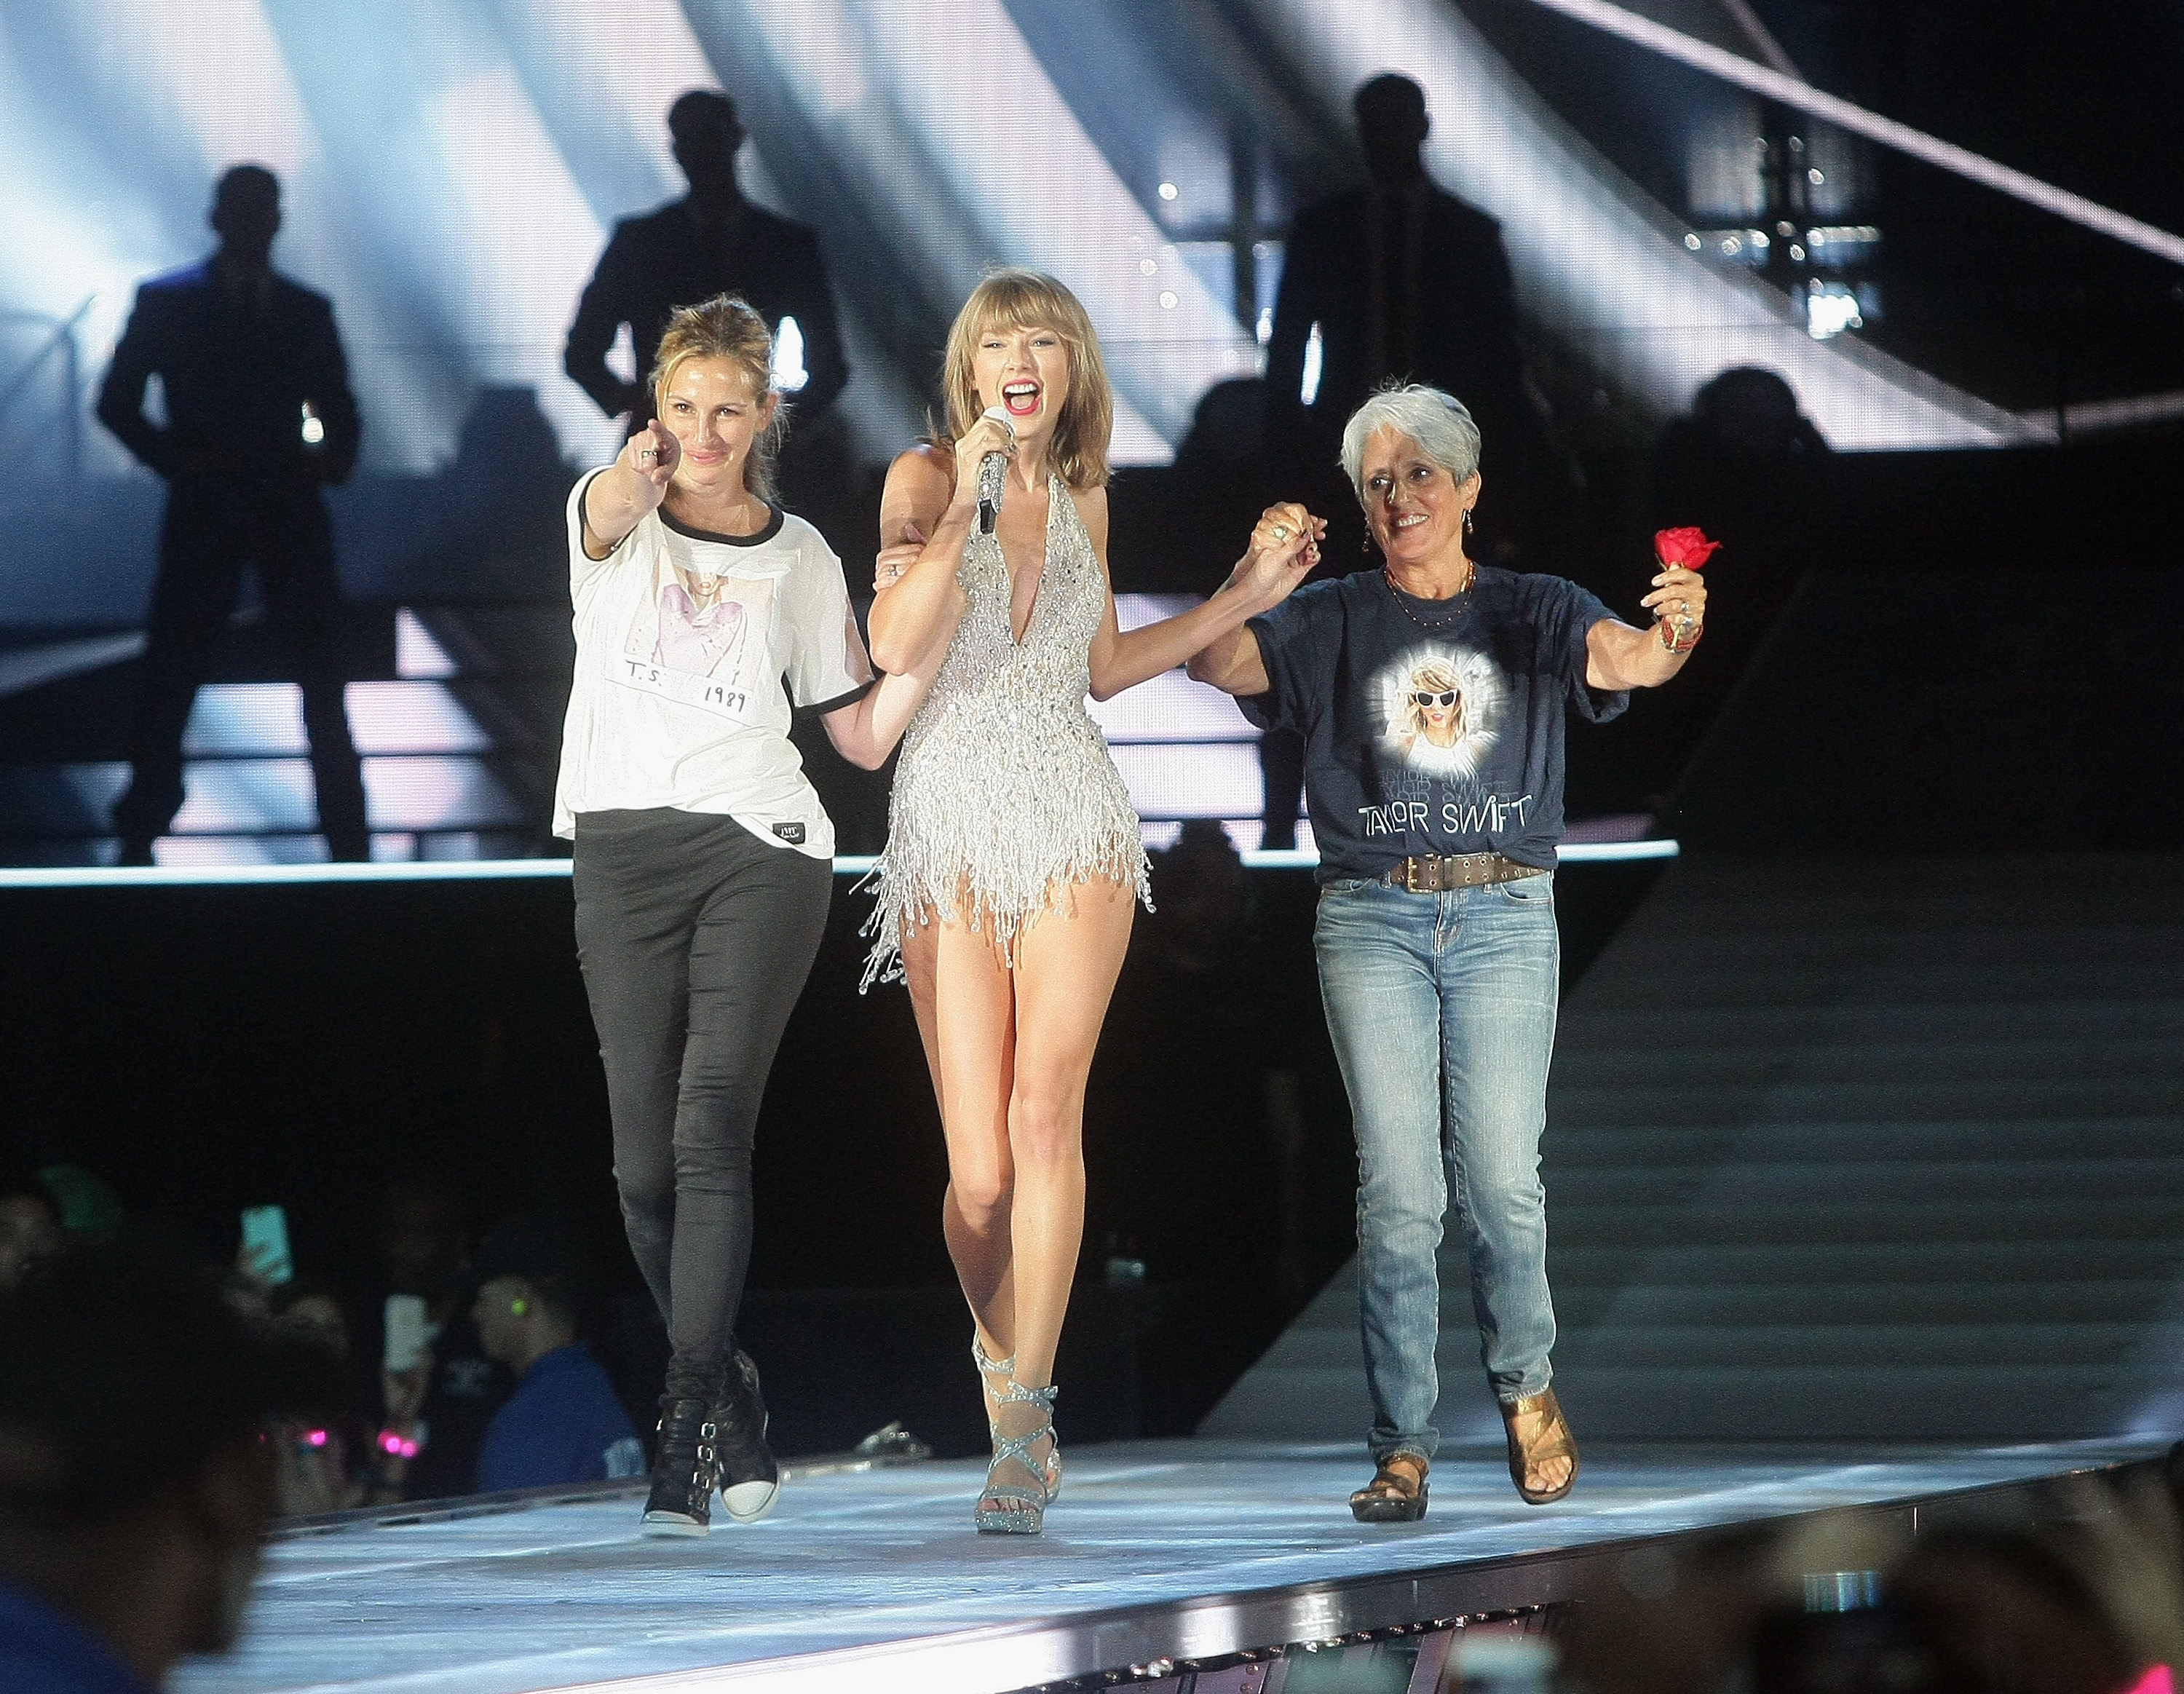 Left to right, actress Julia Roberts, Taylor Swift and musician Joan Baez appear together during Swift's  The 1989 World Tour  at Levi's Stadium in Santa Clara, Calif.,  on Aug. 15, 2015.